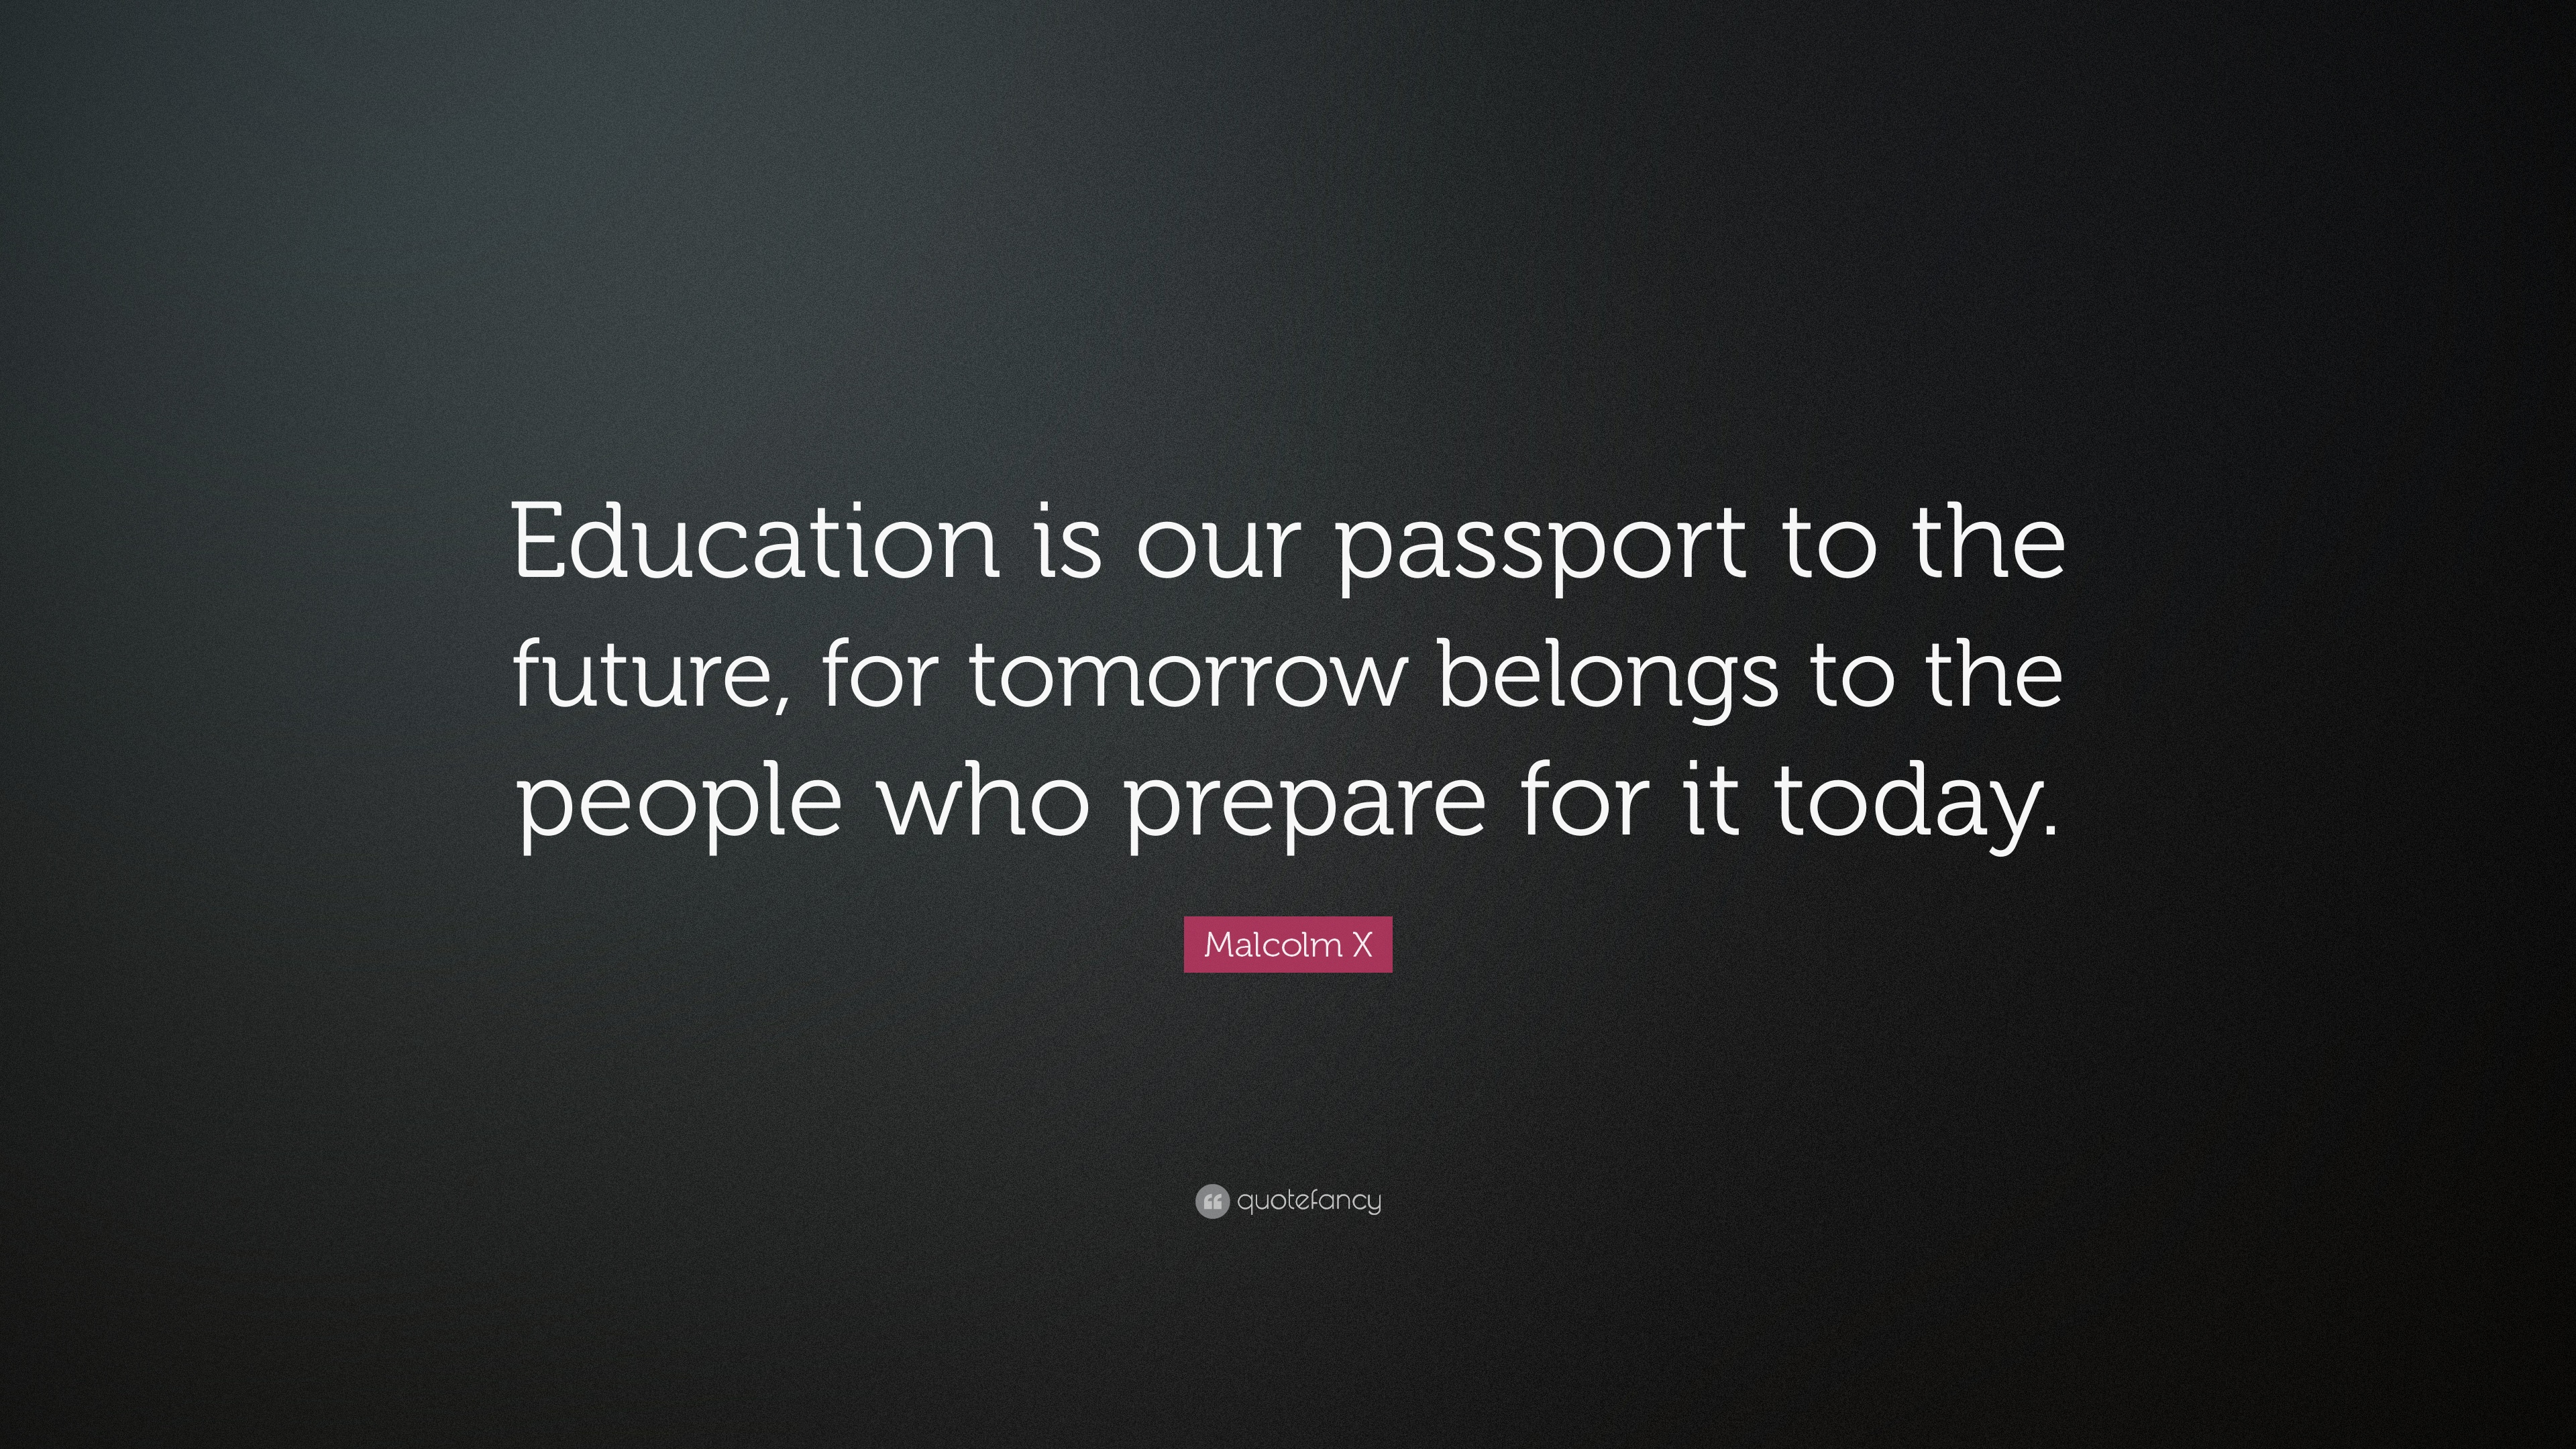 Malcolm x Quotes Education is The Passport to The Future Malcolm x Quote Education is